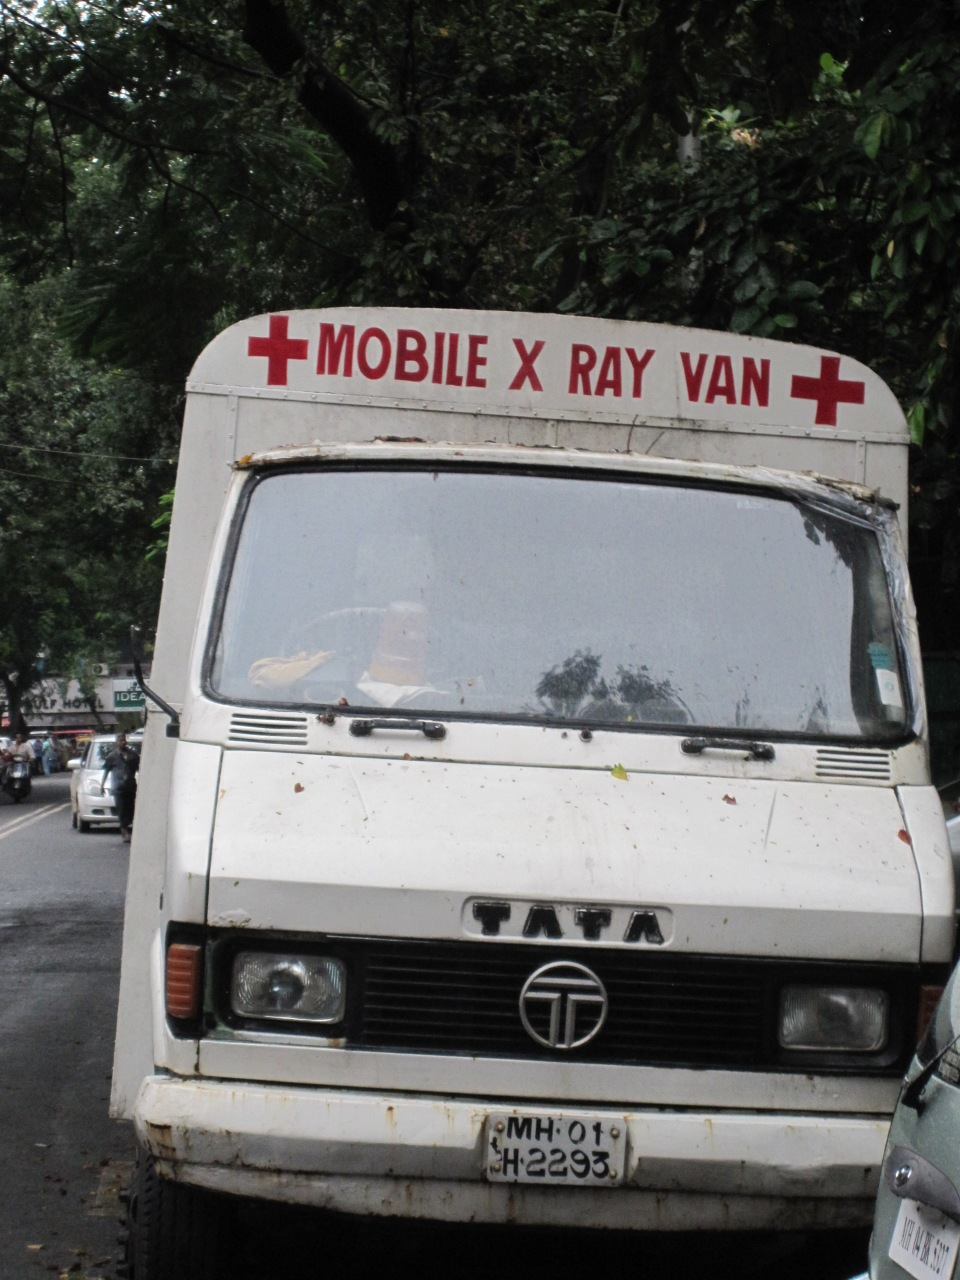 Mobile X Ray Van